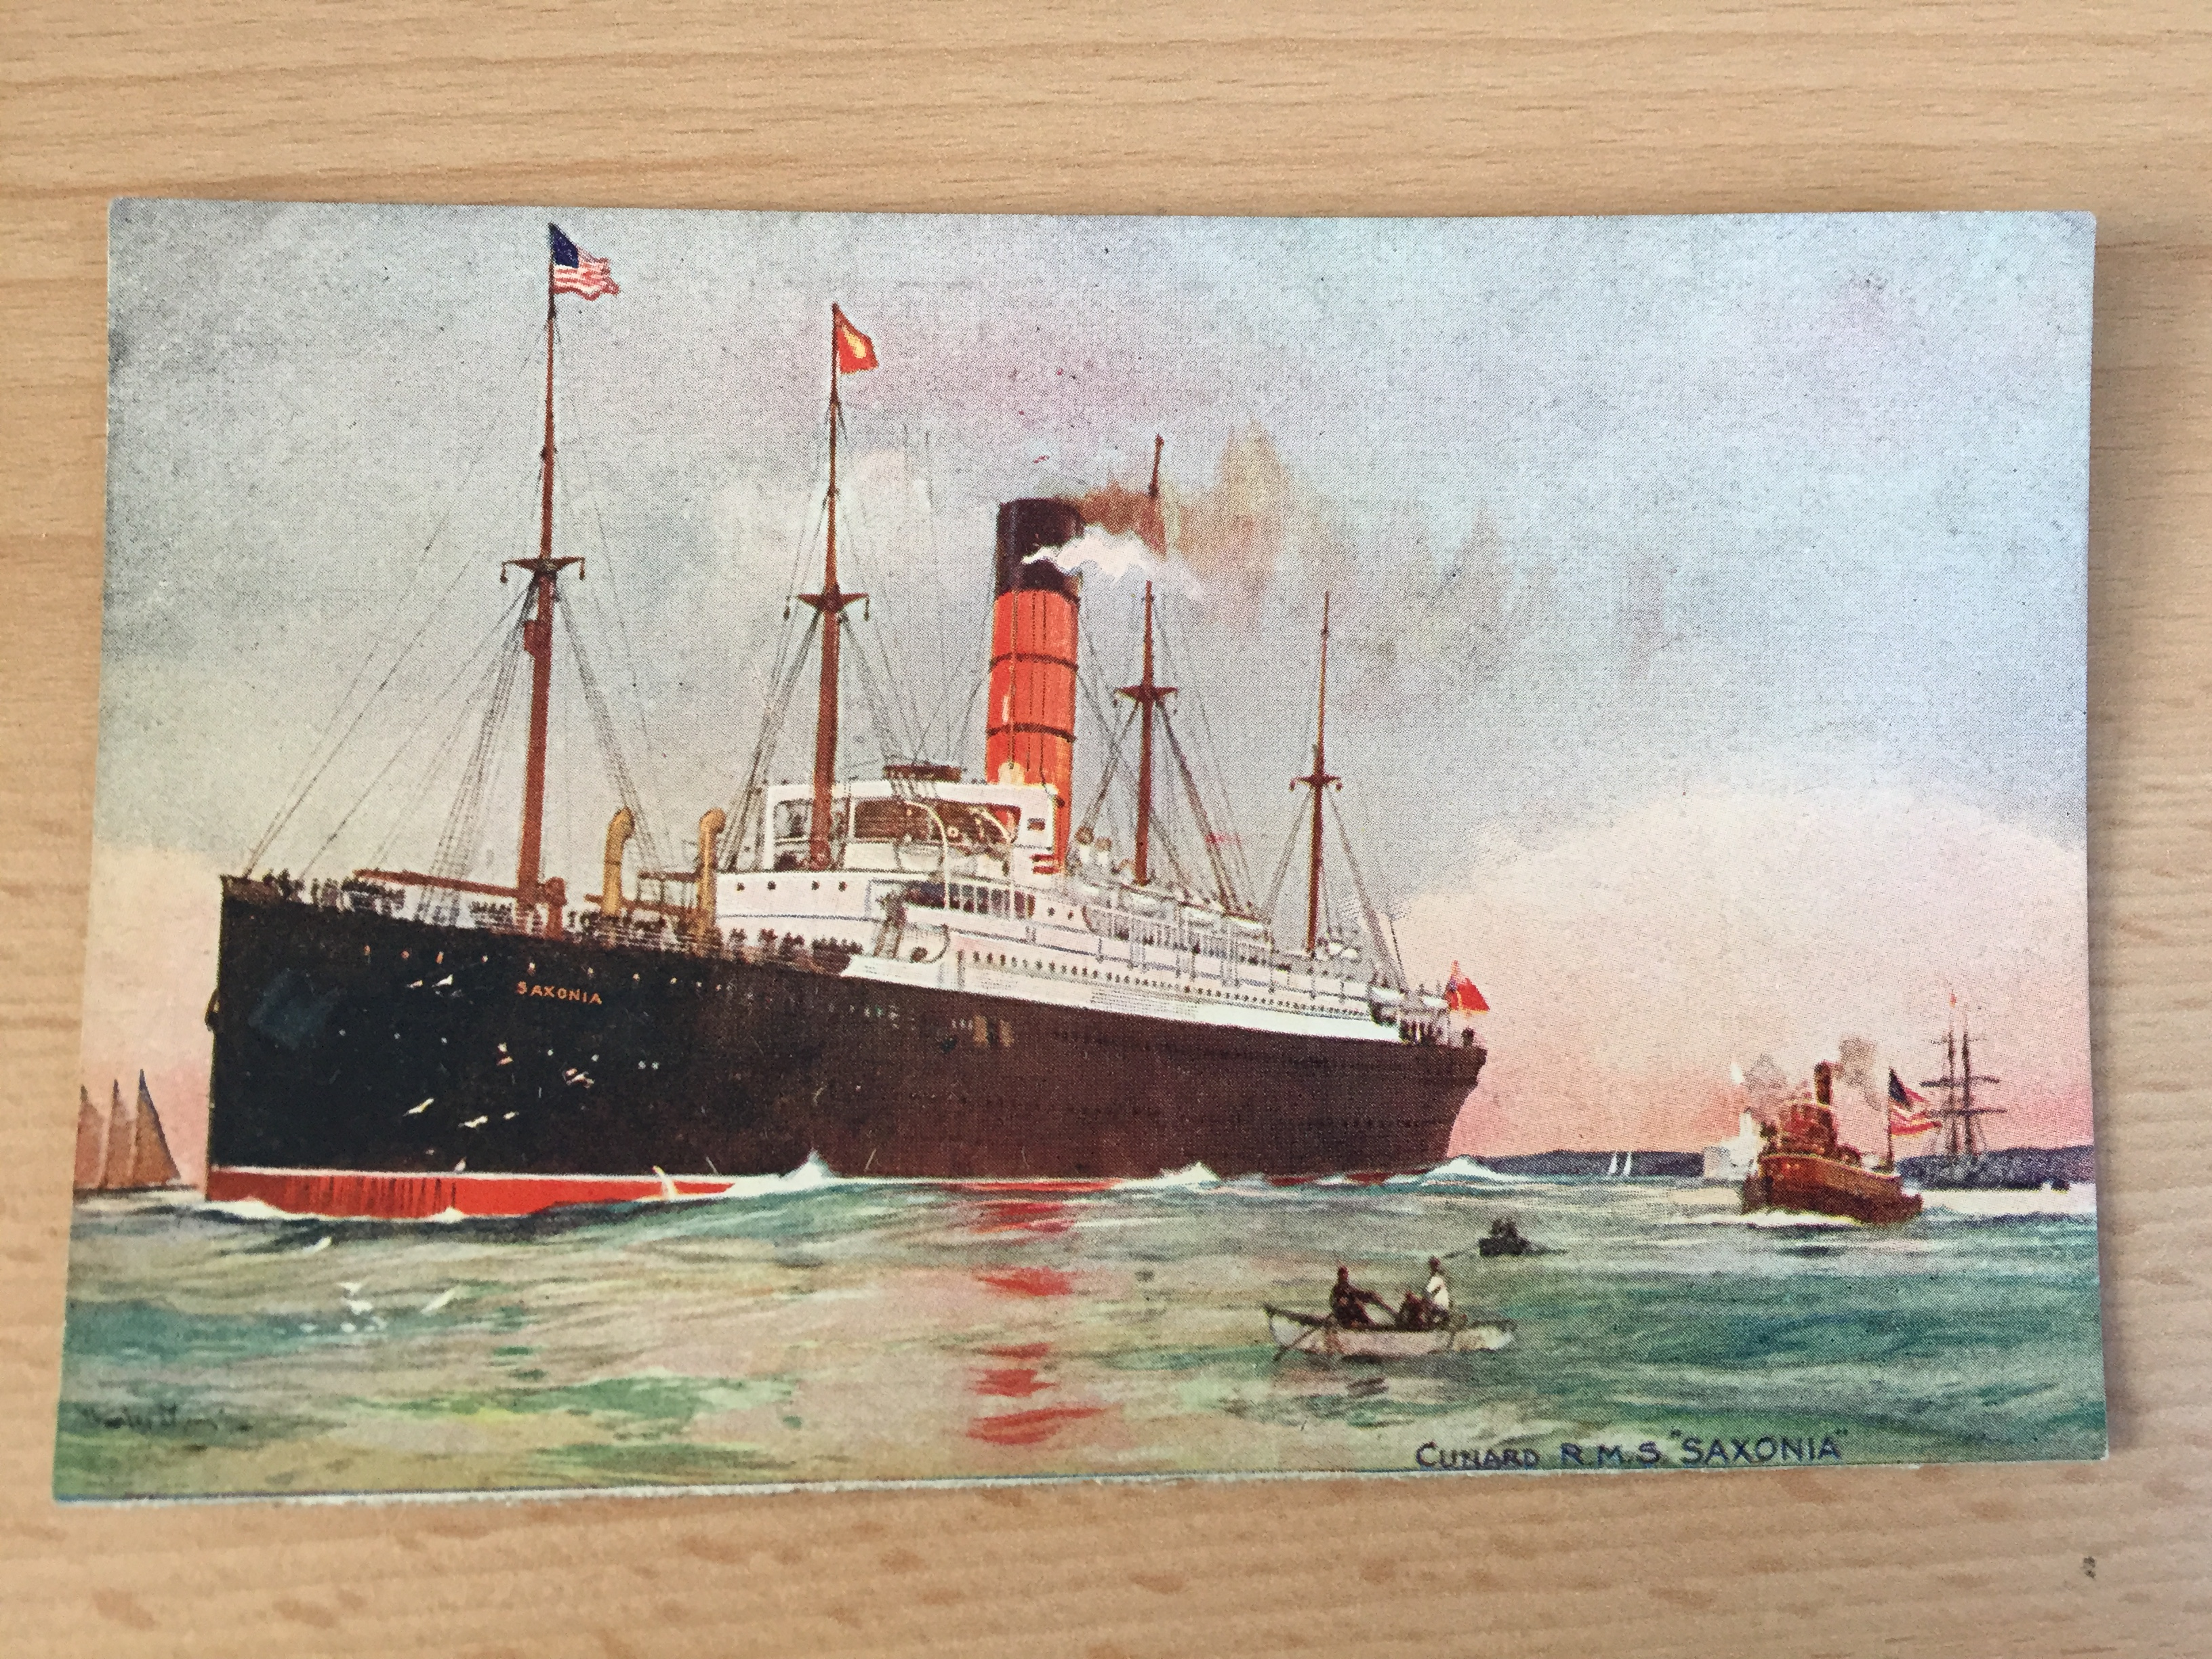 UNUSED COLOUR POSTCARD OF THE CUNARD LINE VESSEL THE RMS SAXONIA